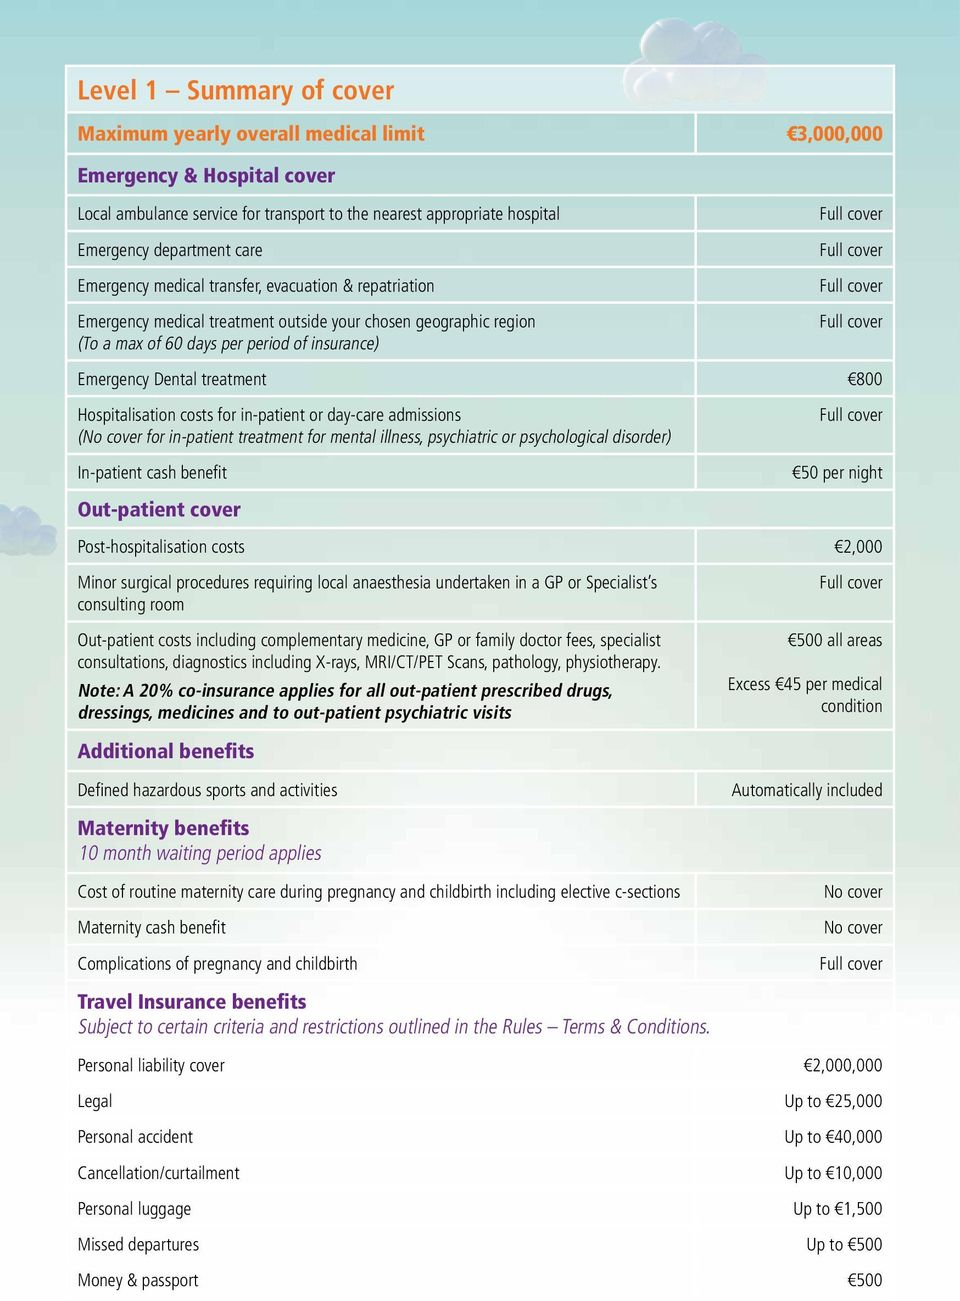 Hospitalisation costs for in-patient or day-care admissions (No cover for in-patient treatment for mental illness, psychiatric or psychological disorder) In-patient cash benefit Out-patient cover 50